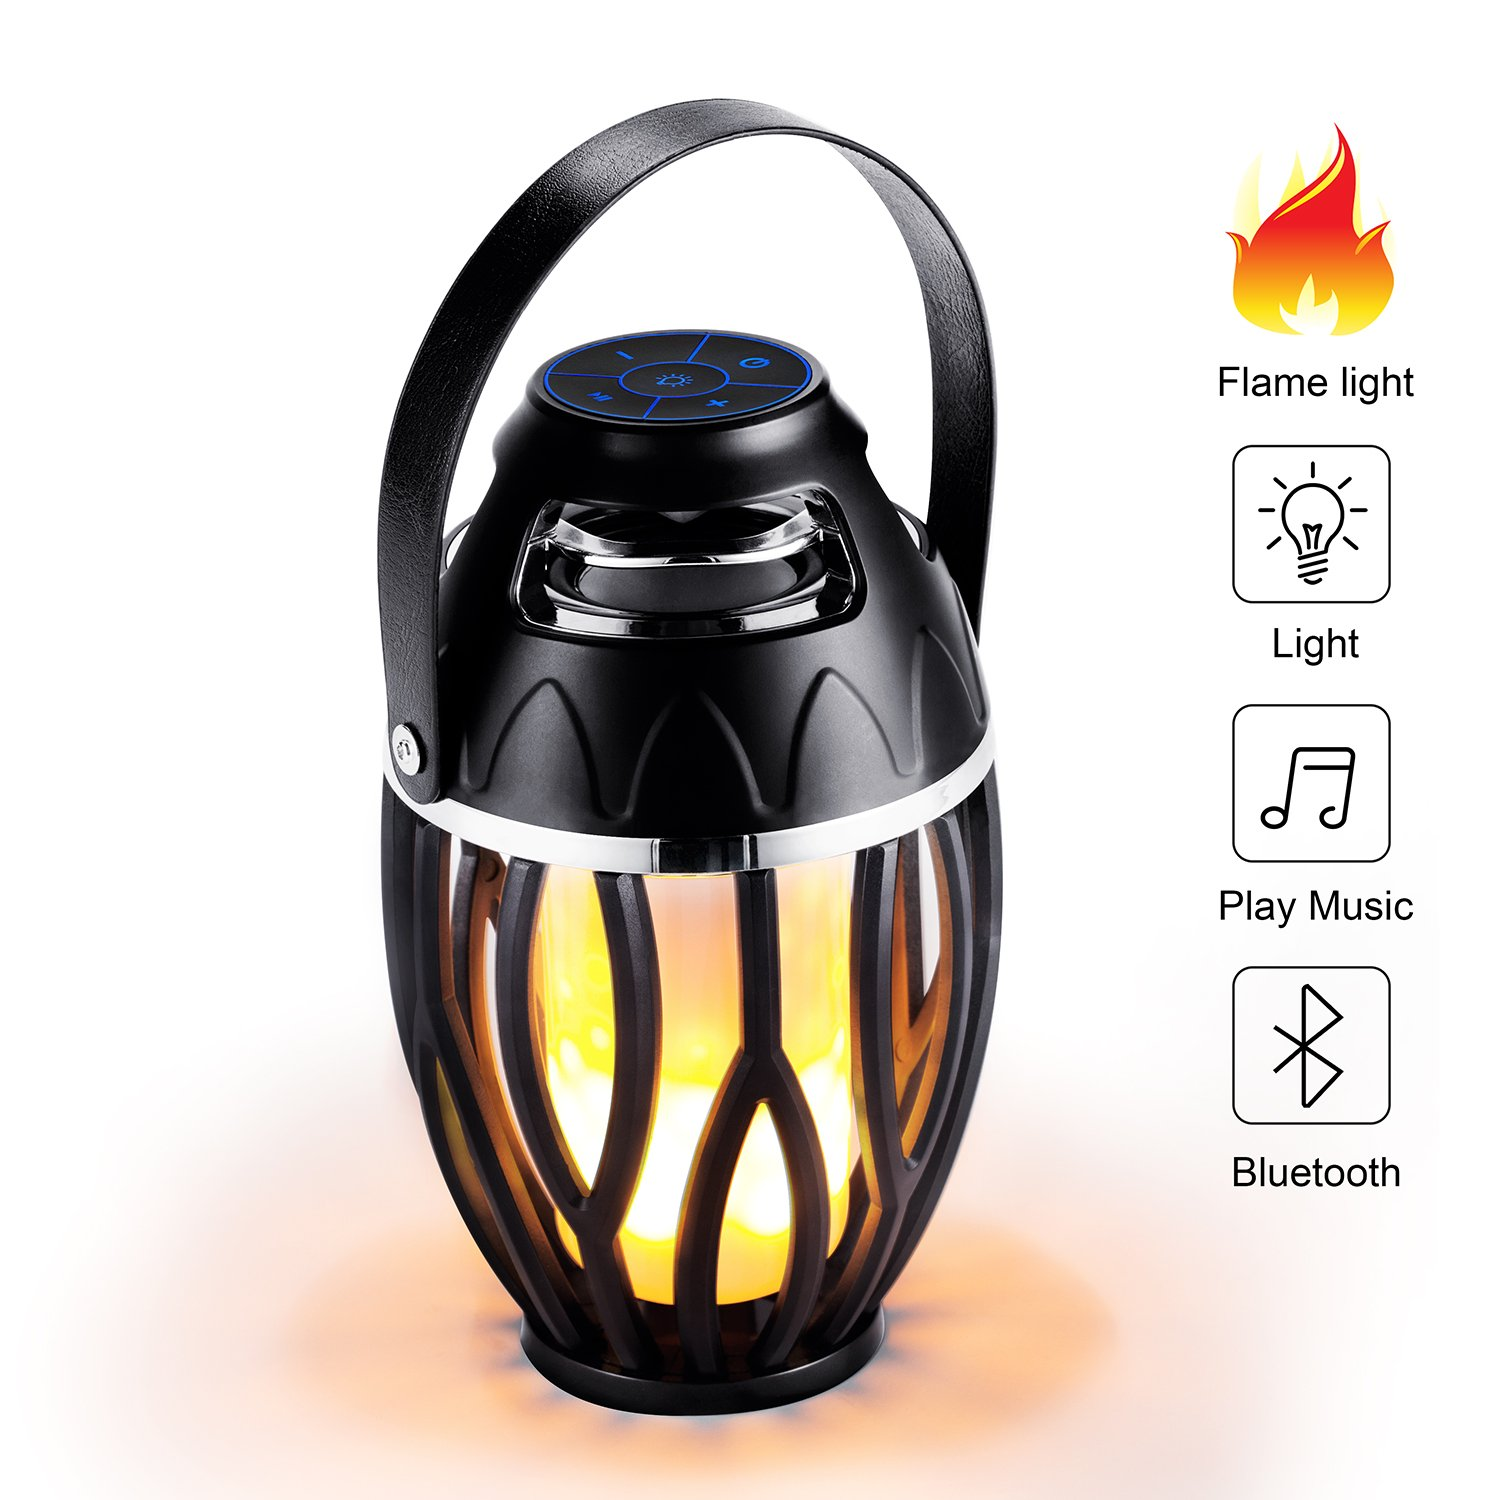 LED Flame Speaker,FW-ZONE Outdoor/Indoor Bluetooth Speakers LED Night Light,Camping Hiking Fishing Lamp, Dancing Atmosphere Flickers Flame Torch Two mode lamplight, Portable Stereo Speaker by FW ZONE